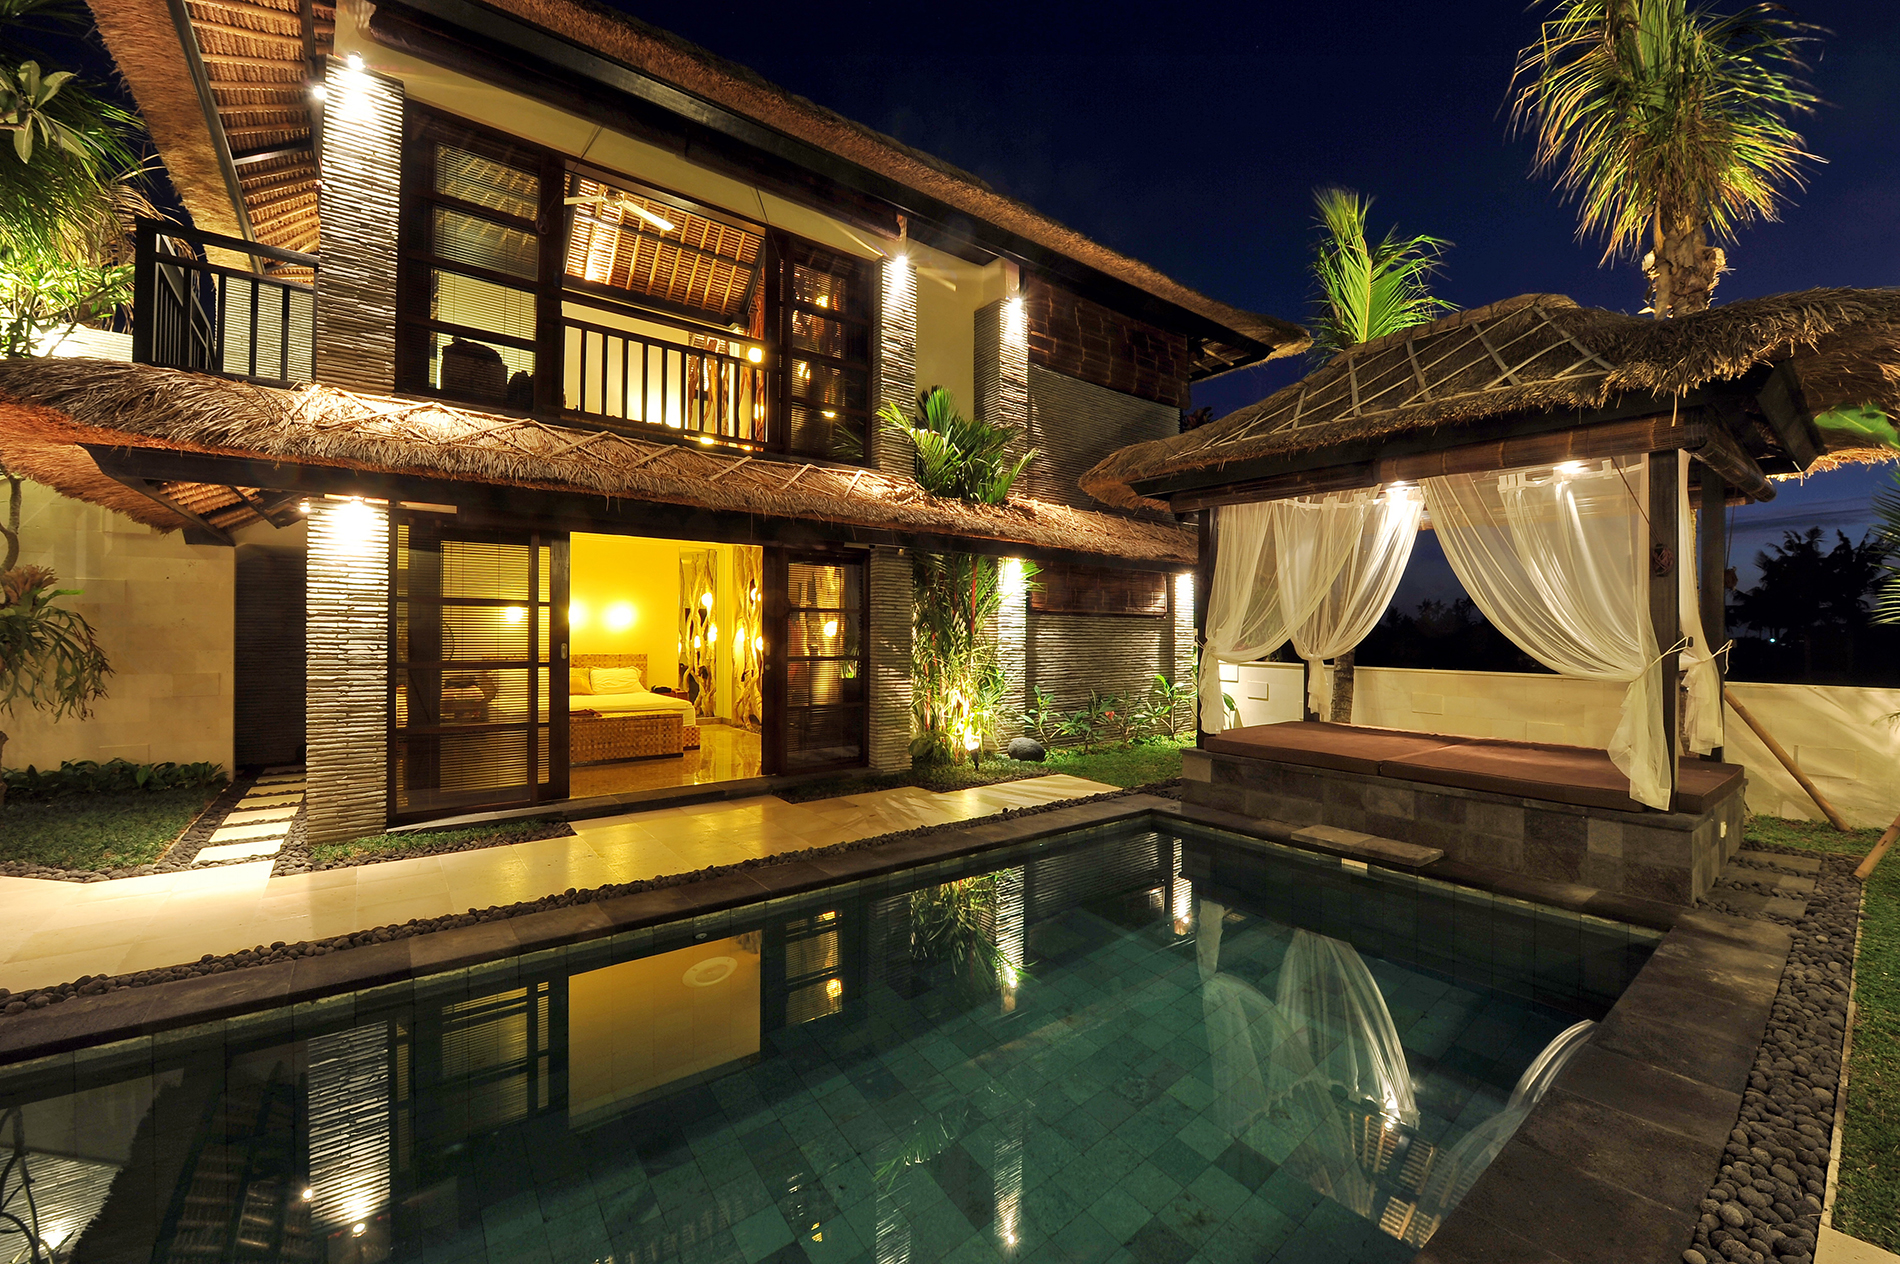 Of Southeast Asian style building with swimming pool 53626